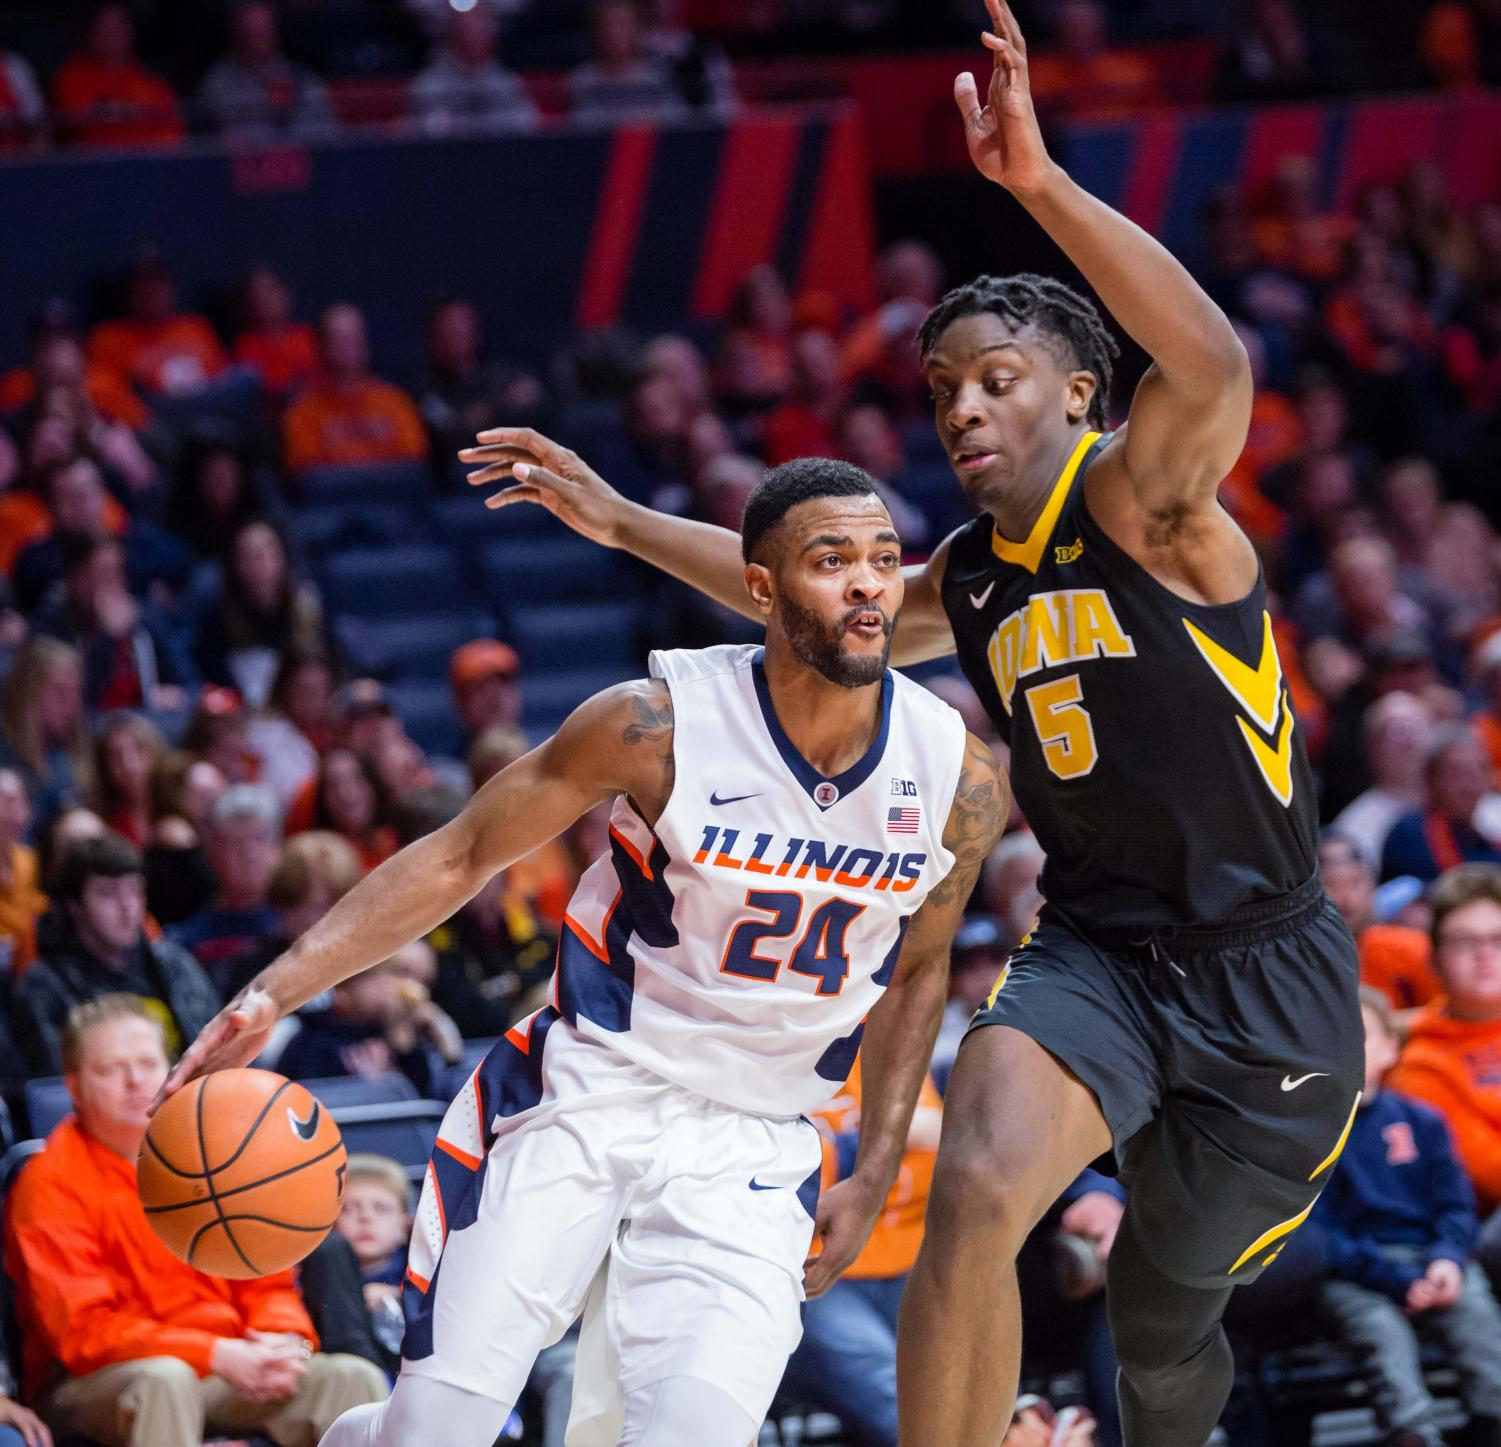 Illinois guard Mark Alstork drives to the basket during the game against Iowa at State Farm Center on Jan. 11. The Illini lost in overtime 104-97.